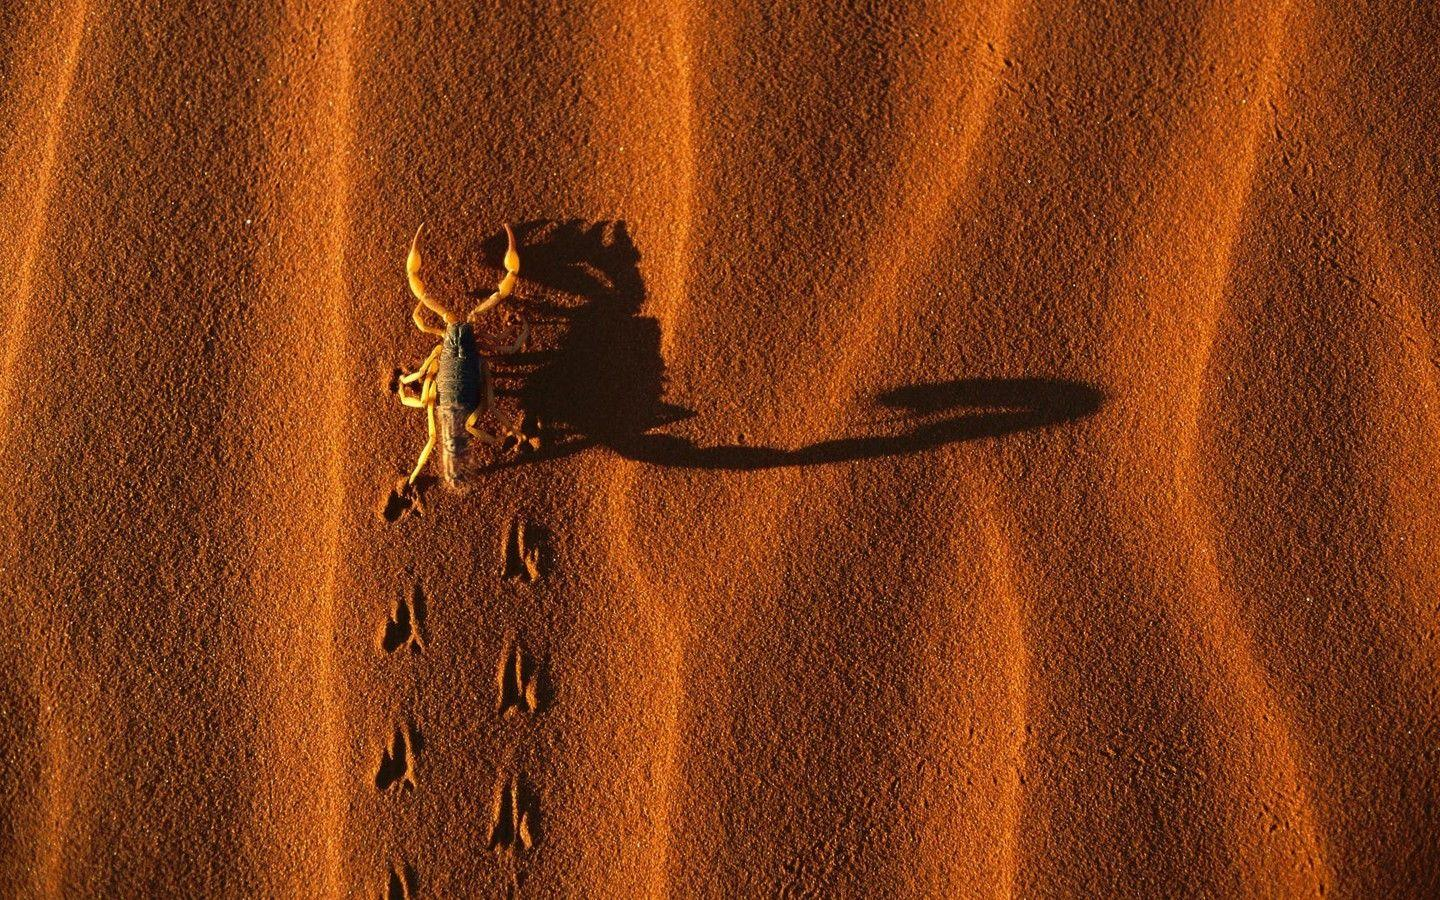 Namibia national park landscapes scorpions shadows wallpaper ...